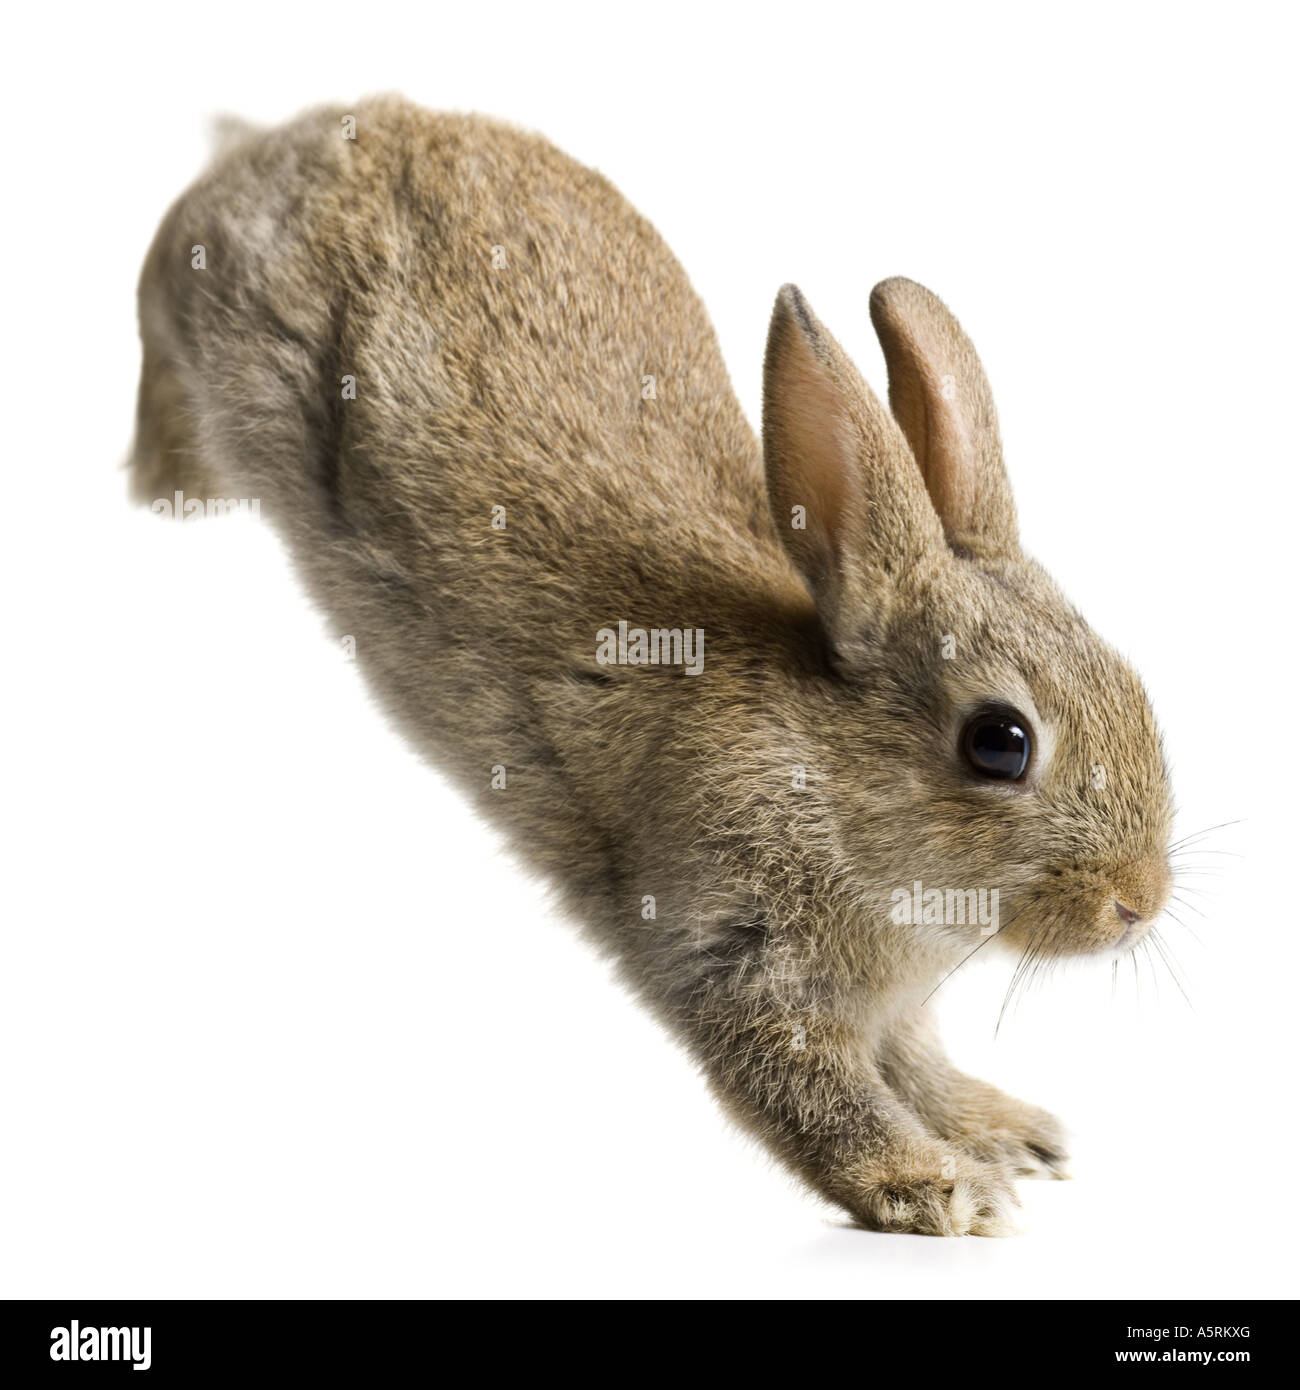 Rabbit jumping Stock Photo